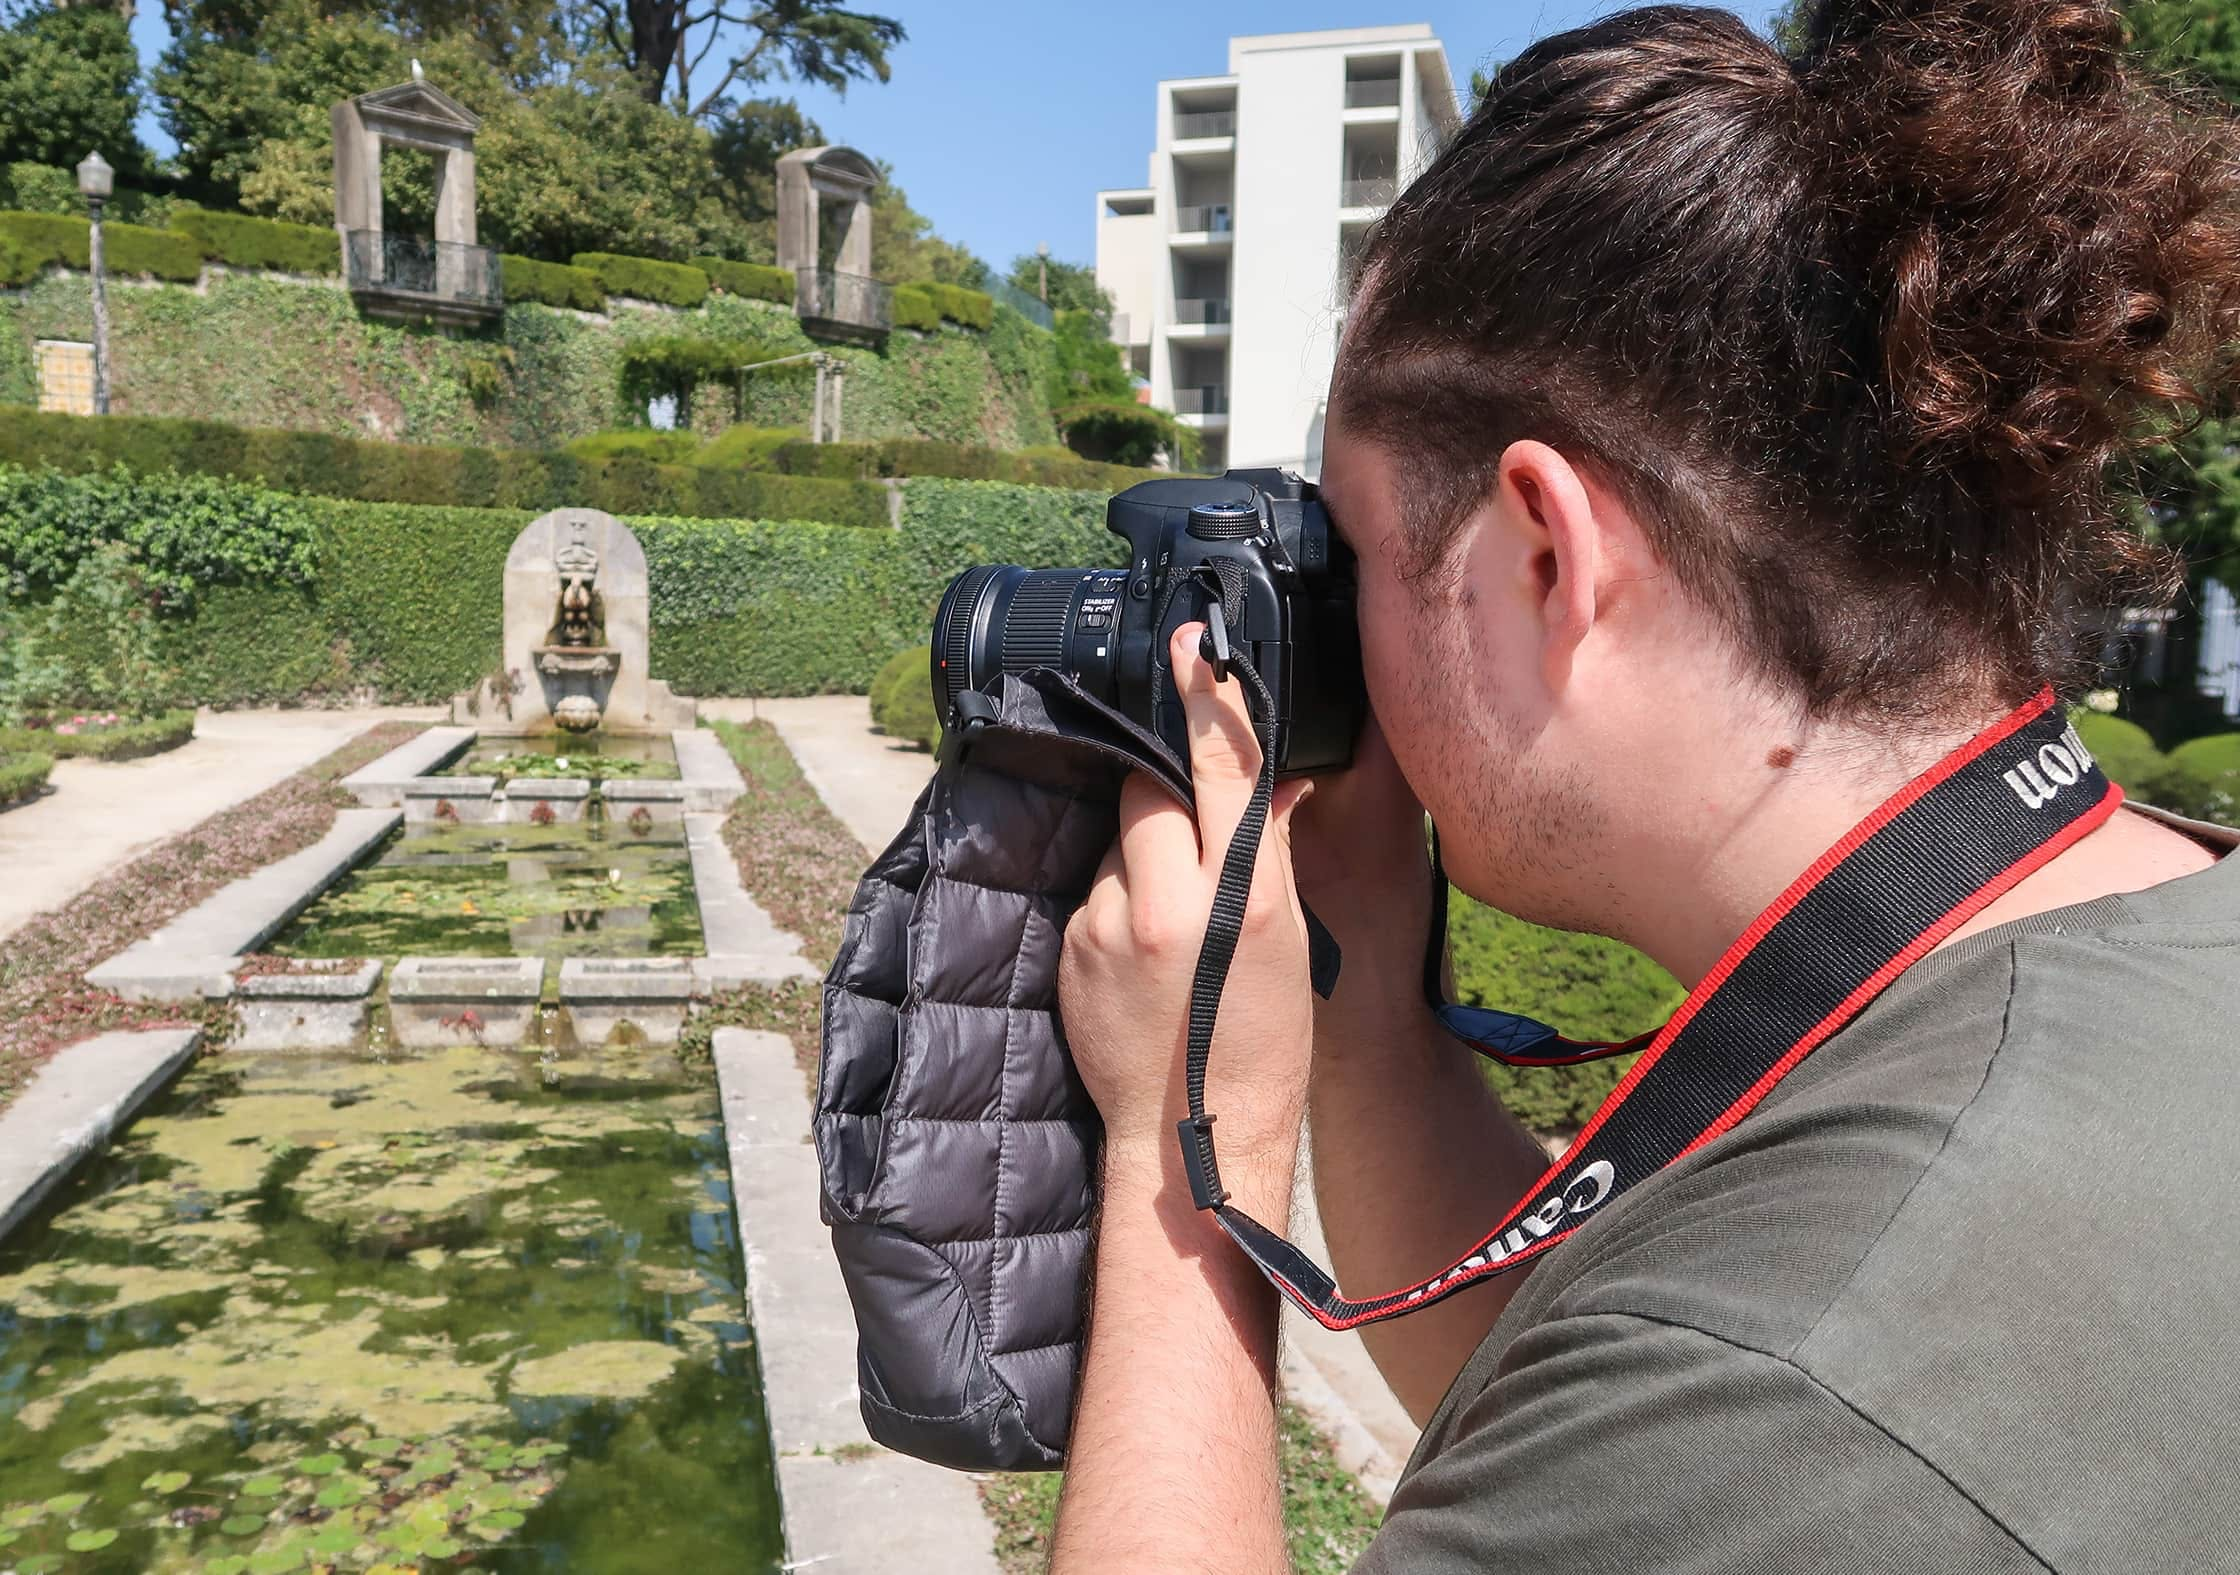 Matador Camera Base Layer At The Crystal Palace Gardens In Porto, Portugal